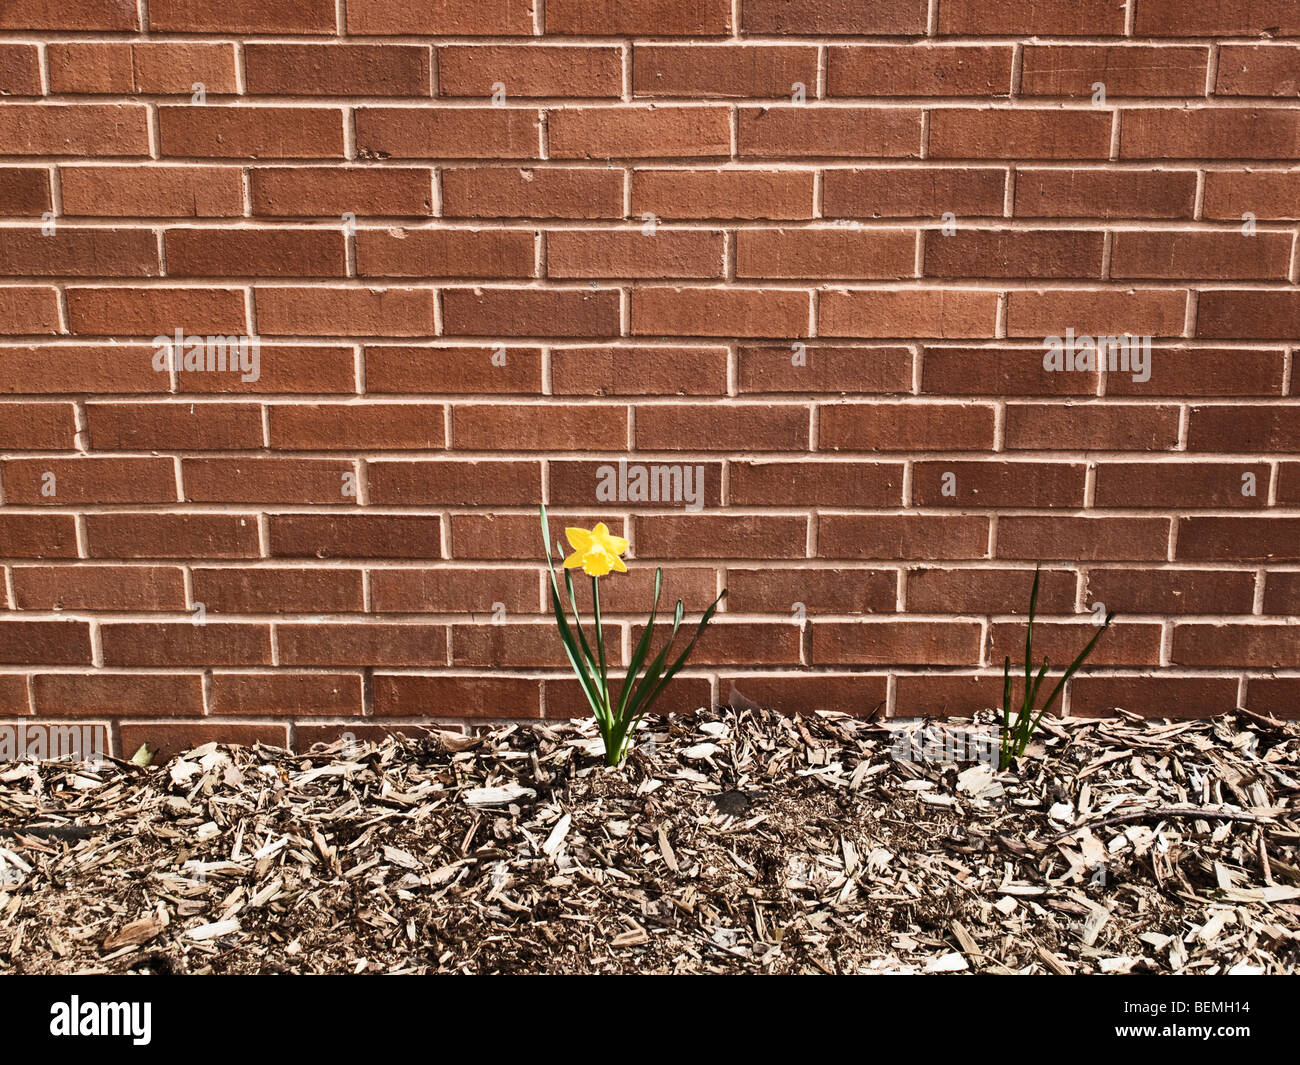 Yellow Flower Growing In Front Of Brick Wall - Stock Image